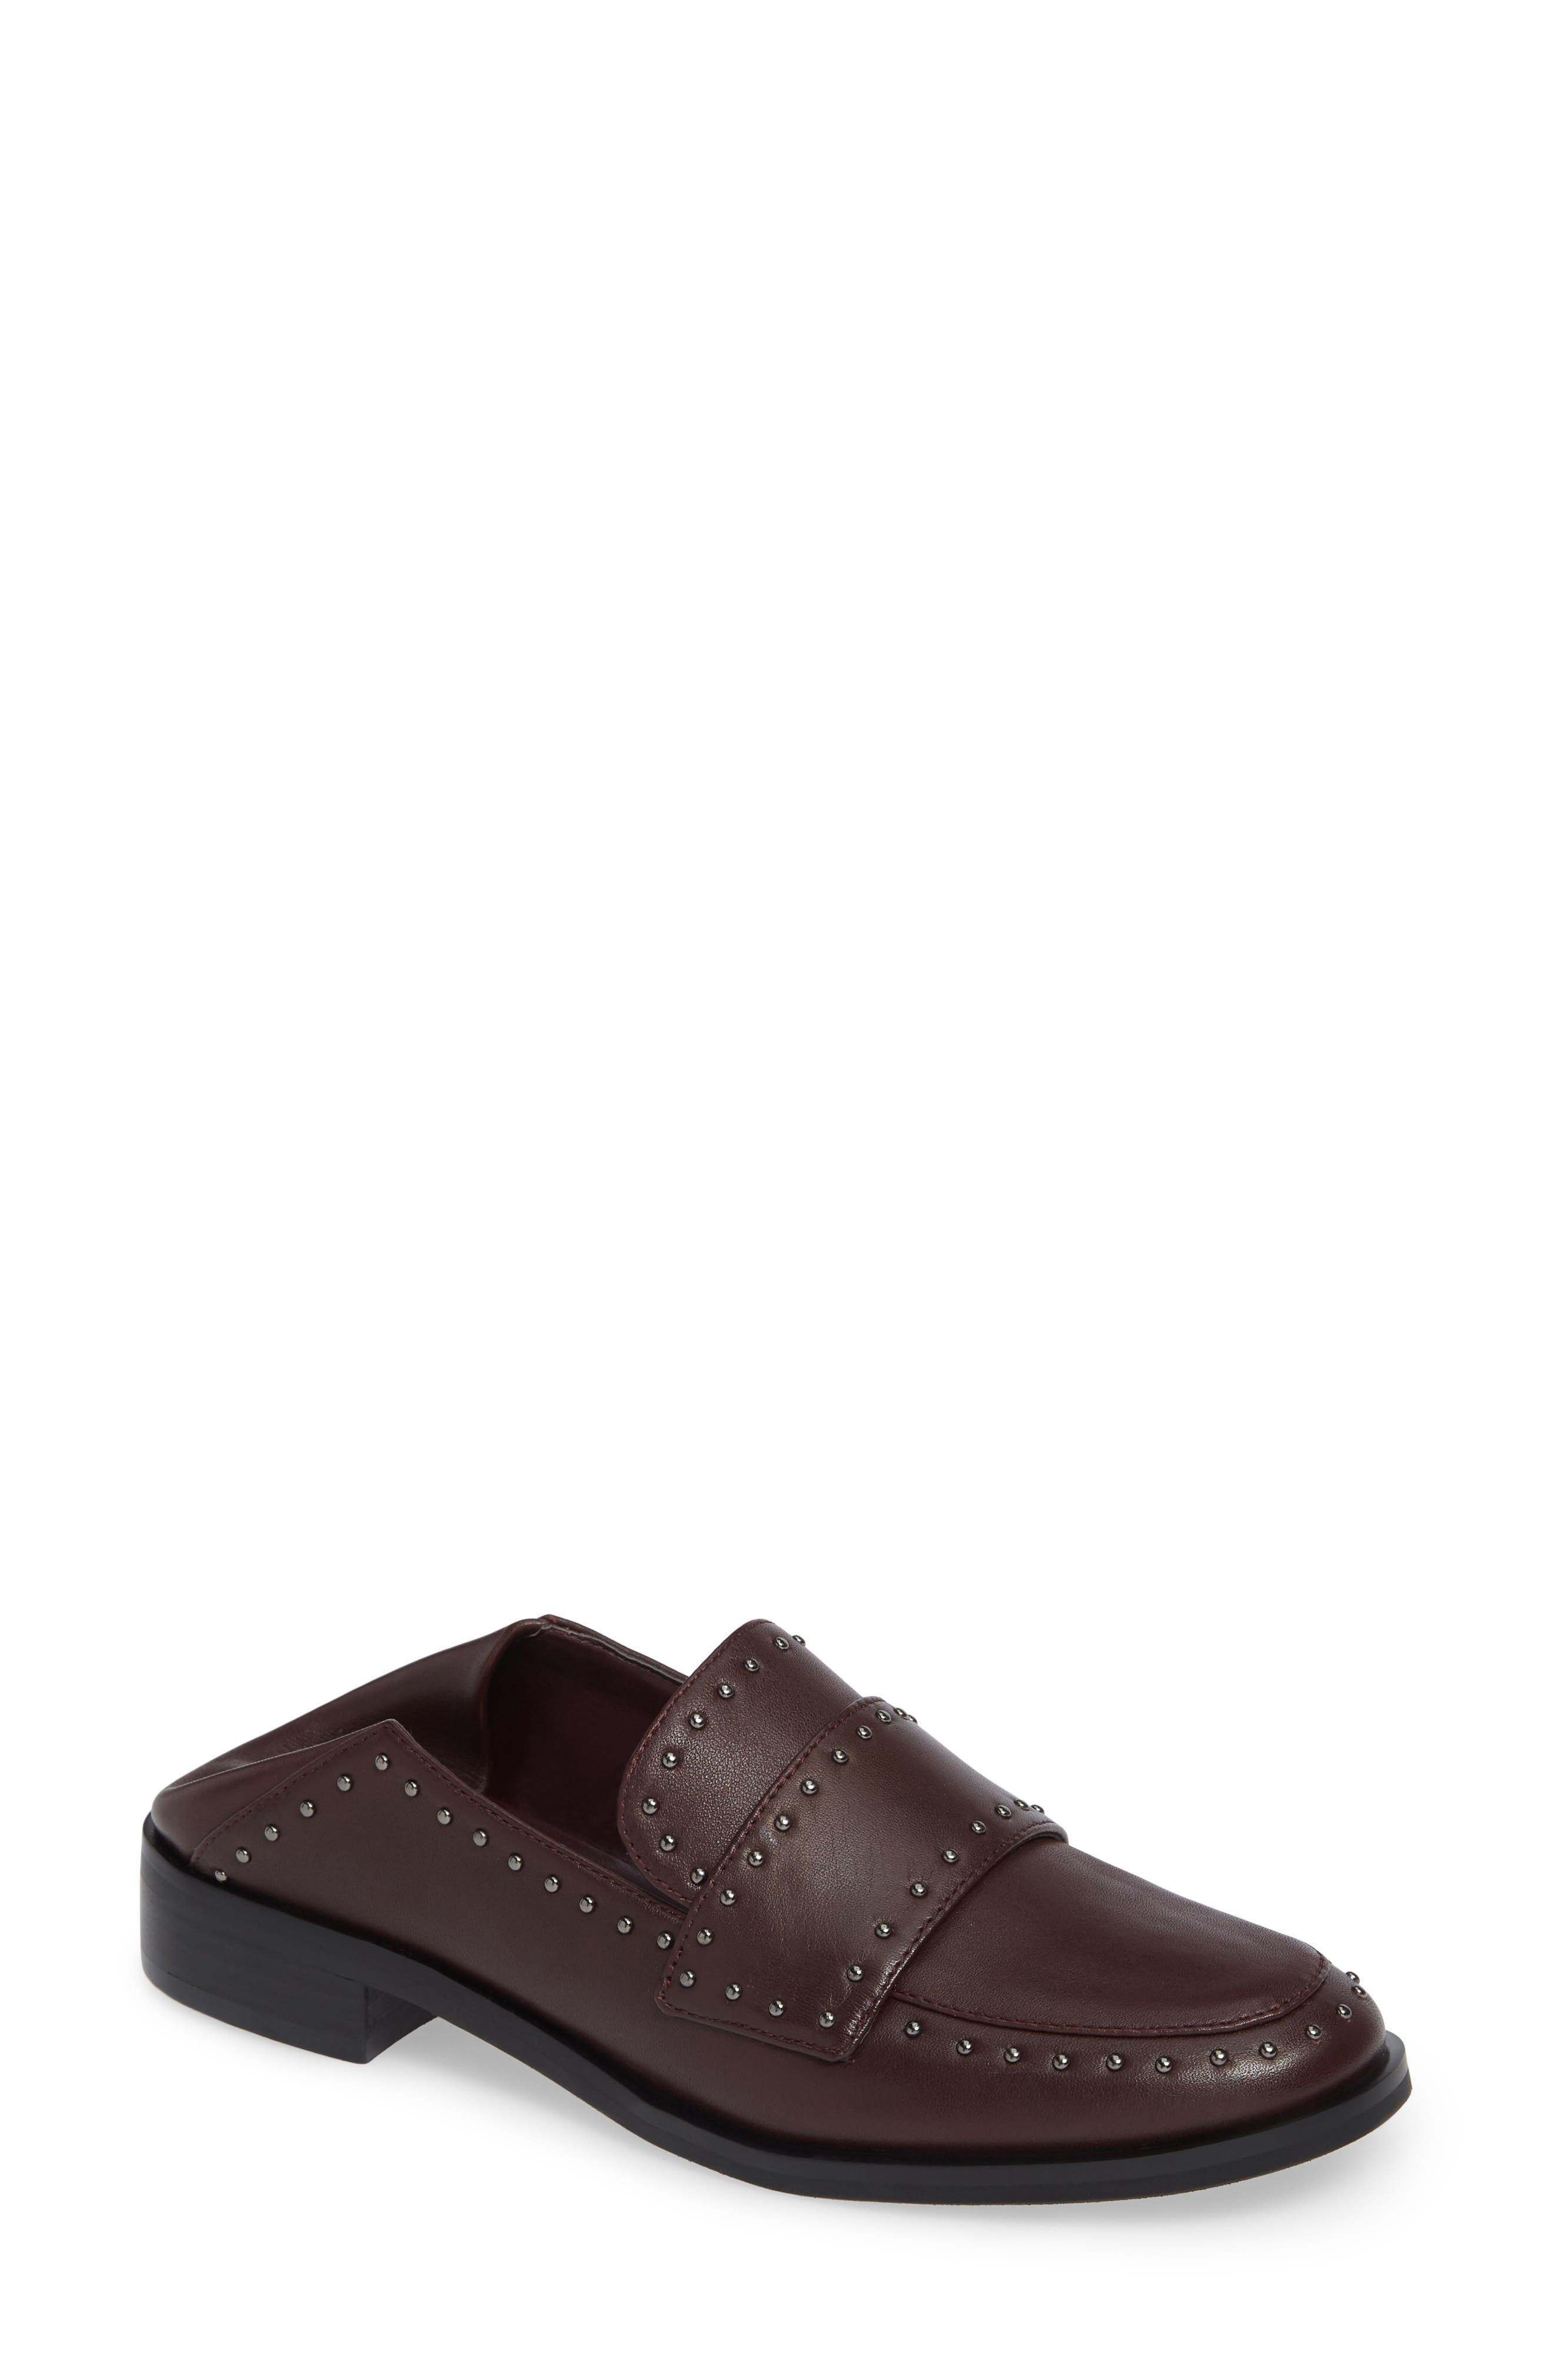 Nox Collapsible Loafer,                             Main thumbnail 1, color,                             930